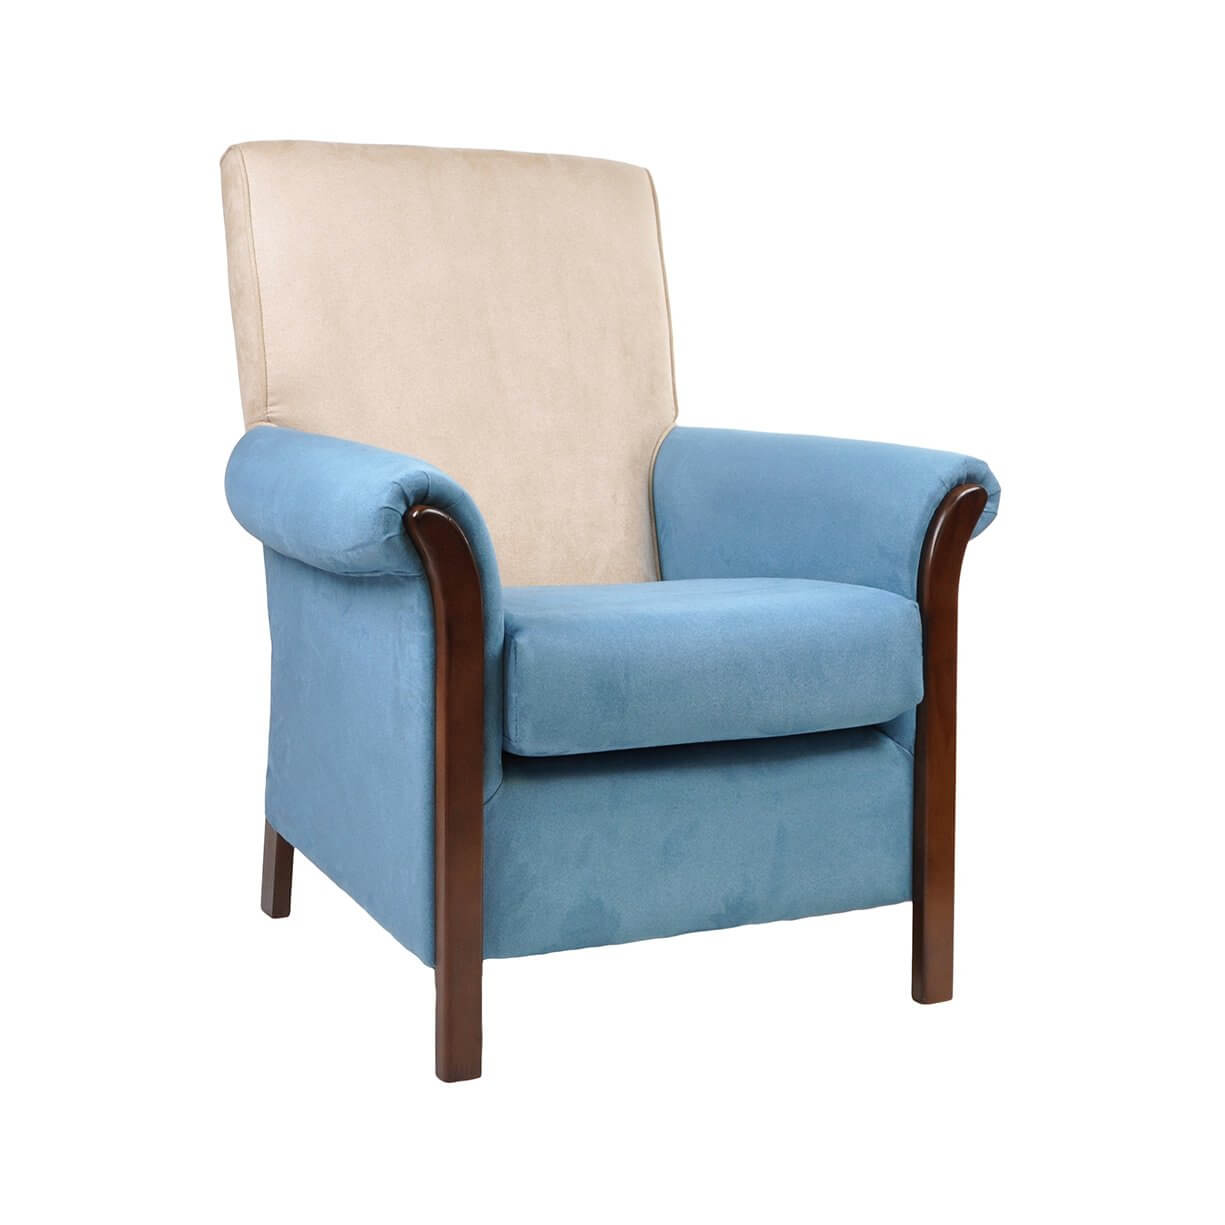 Zara Easy Back Barons Contract Furniture